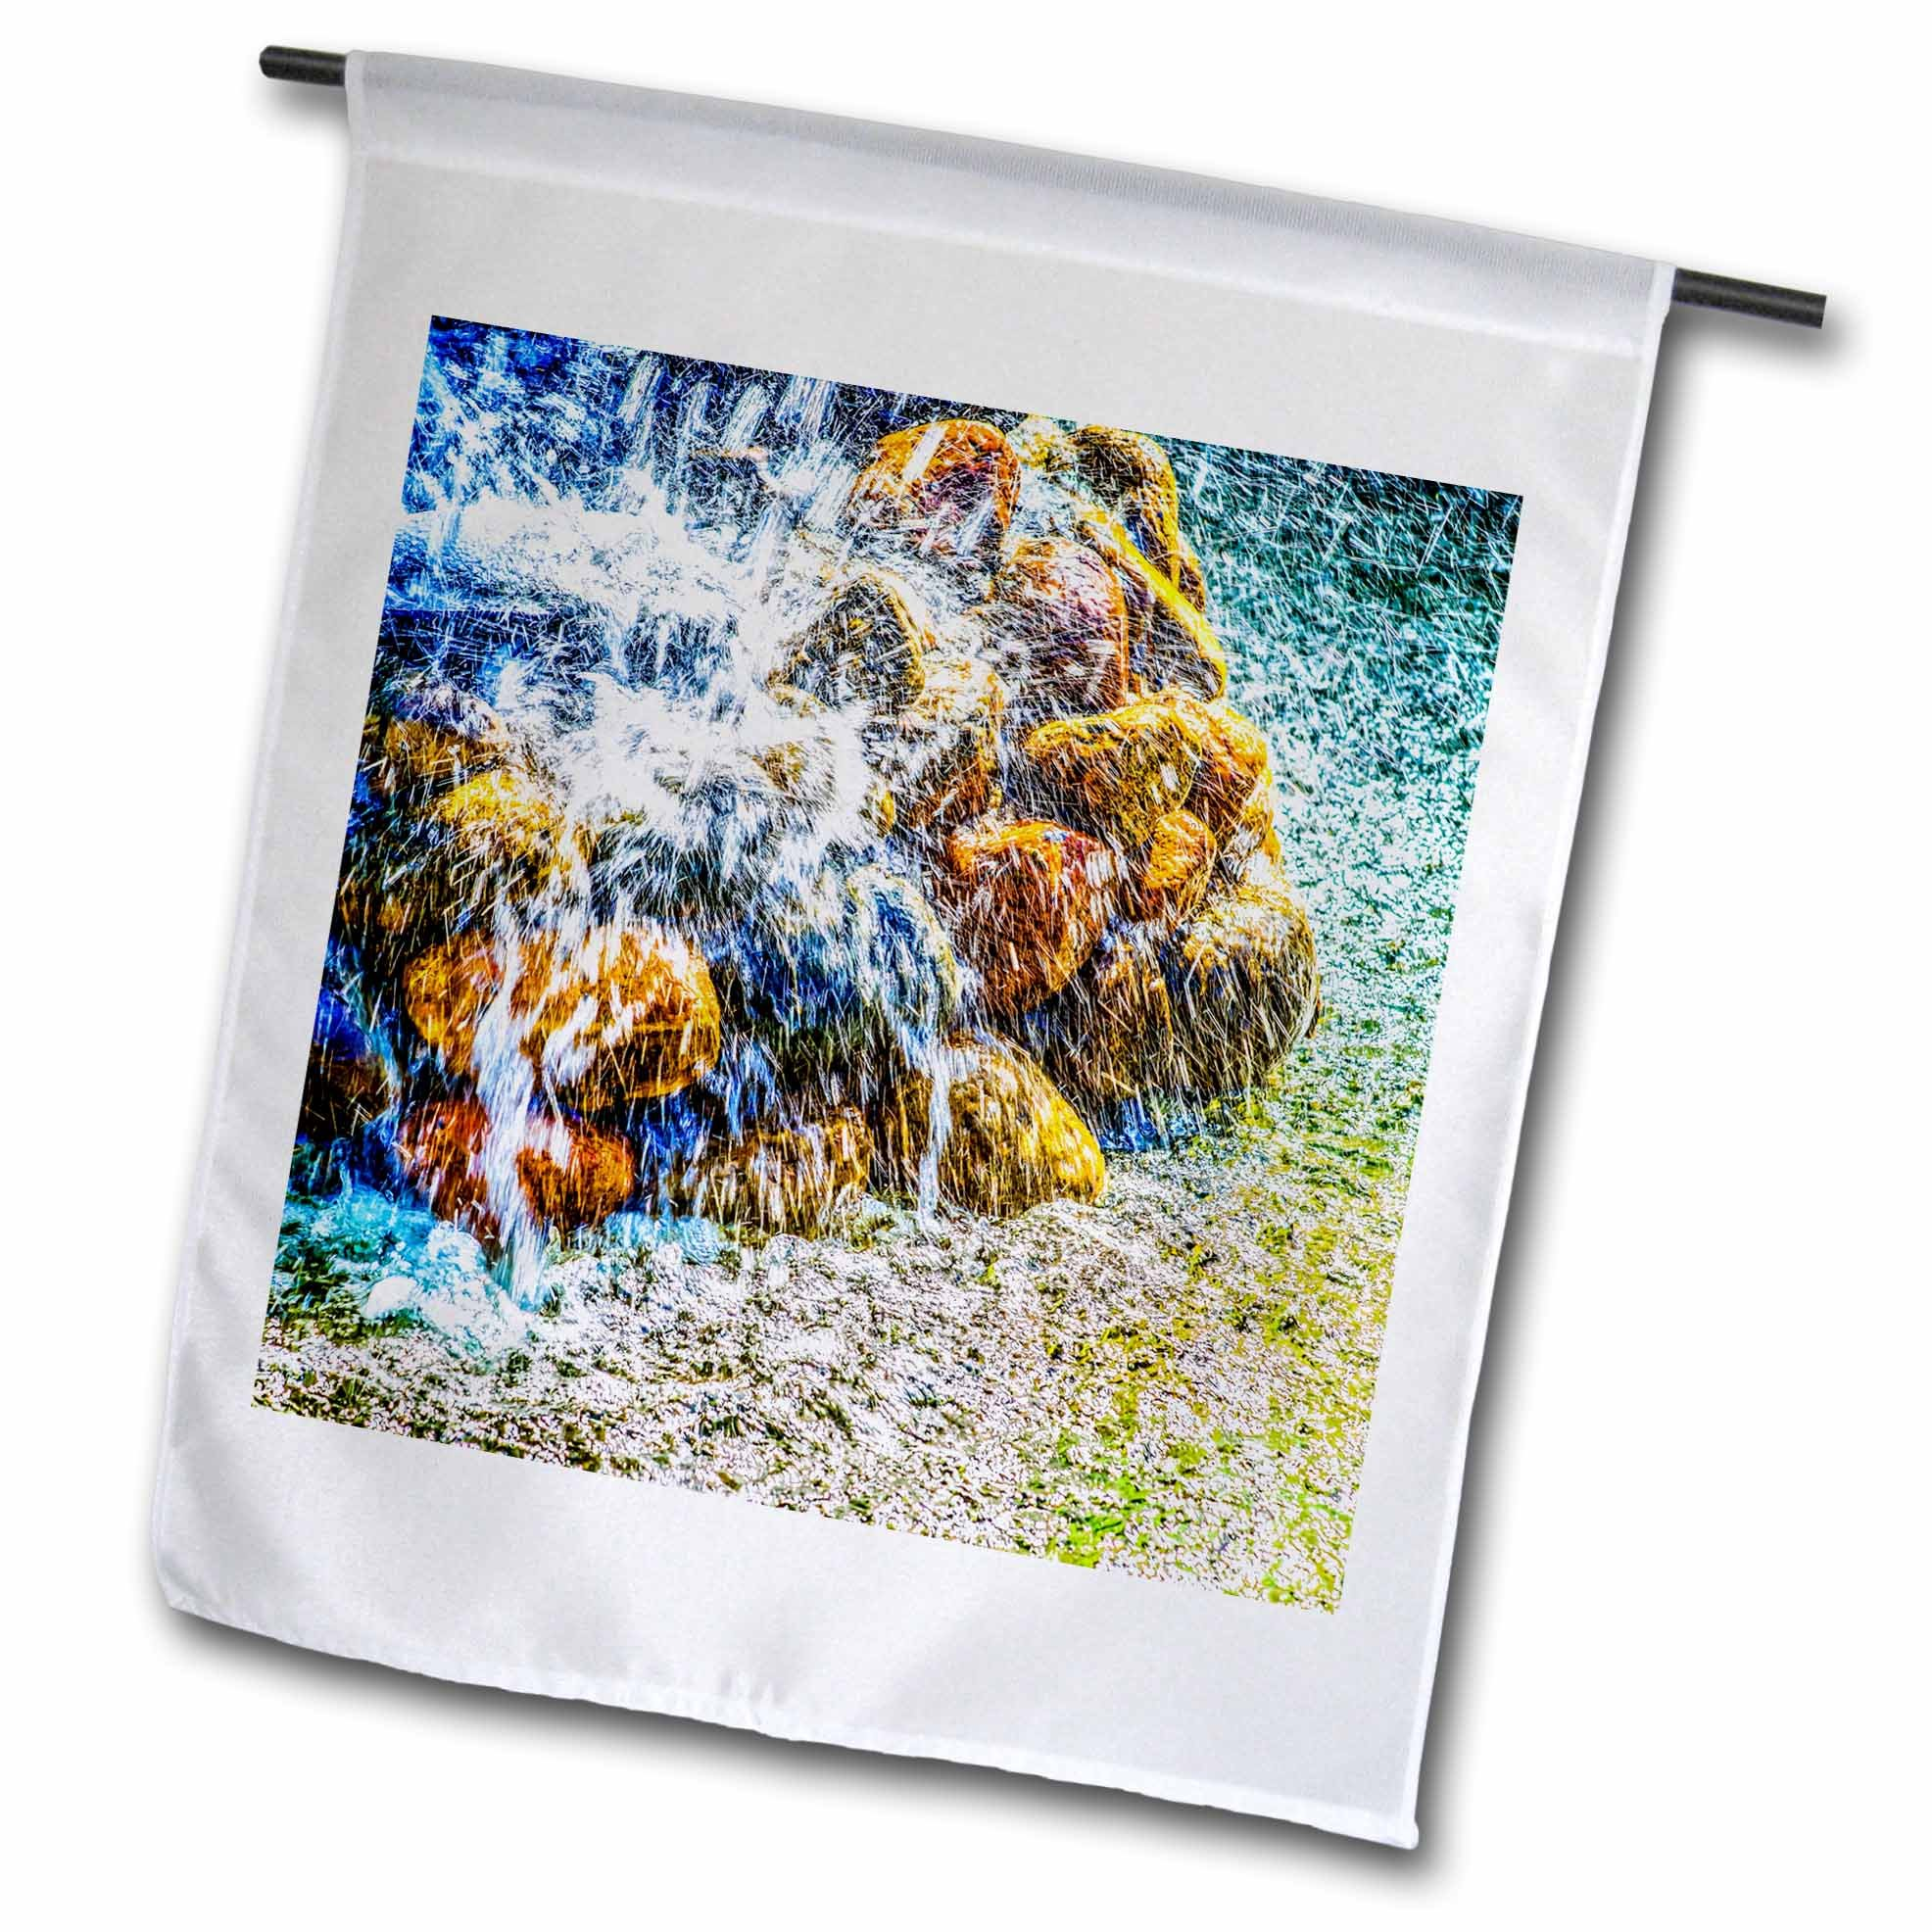 3dRose Alexis Photography - Objects - Violent water jets over the fountain stones - 18 x 27 inch Garden Flag (fl_270877_2)